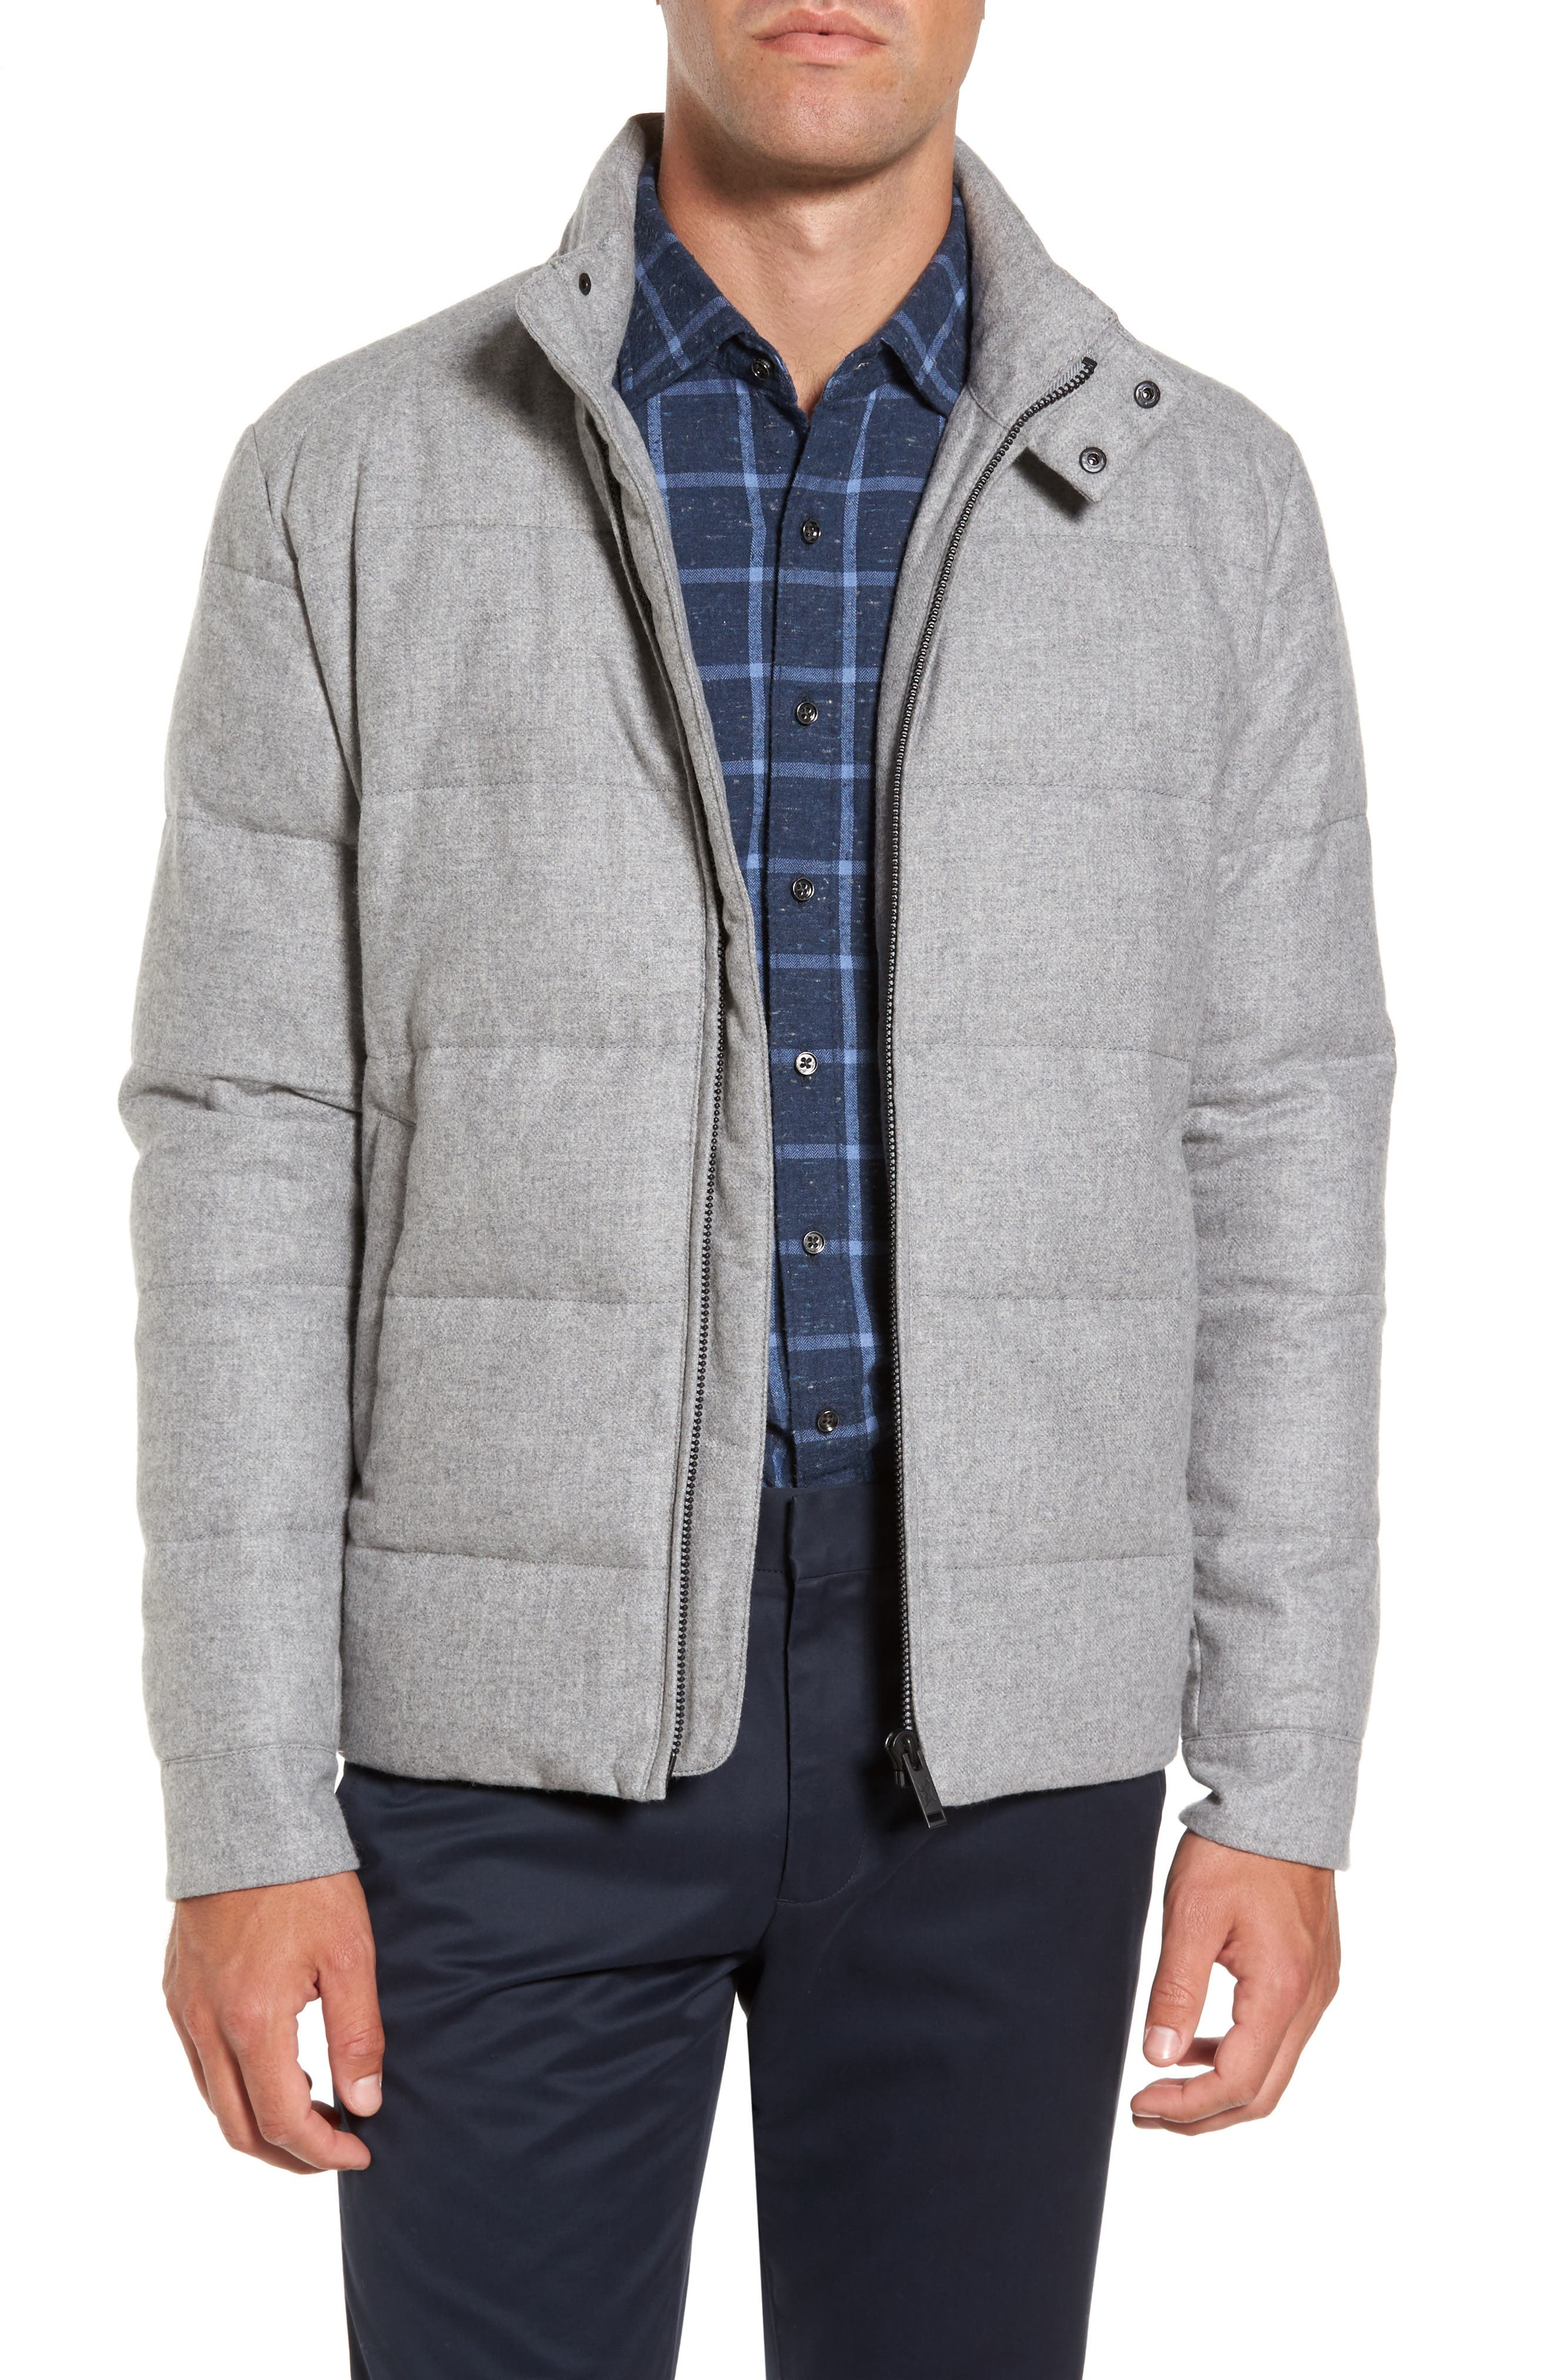 Boltons Water-Resistant Wool Down Jacket,                         Main,                         color, Ash